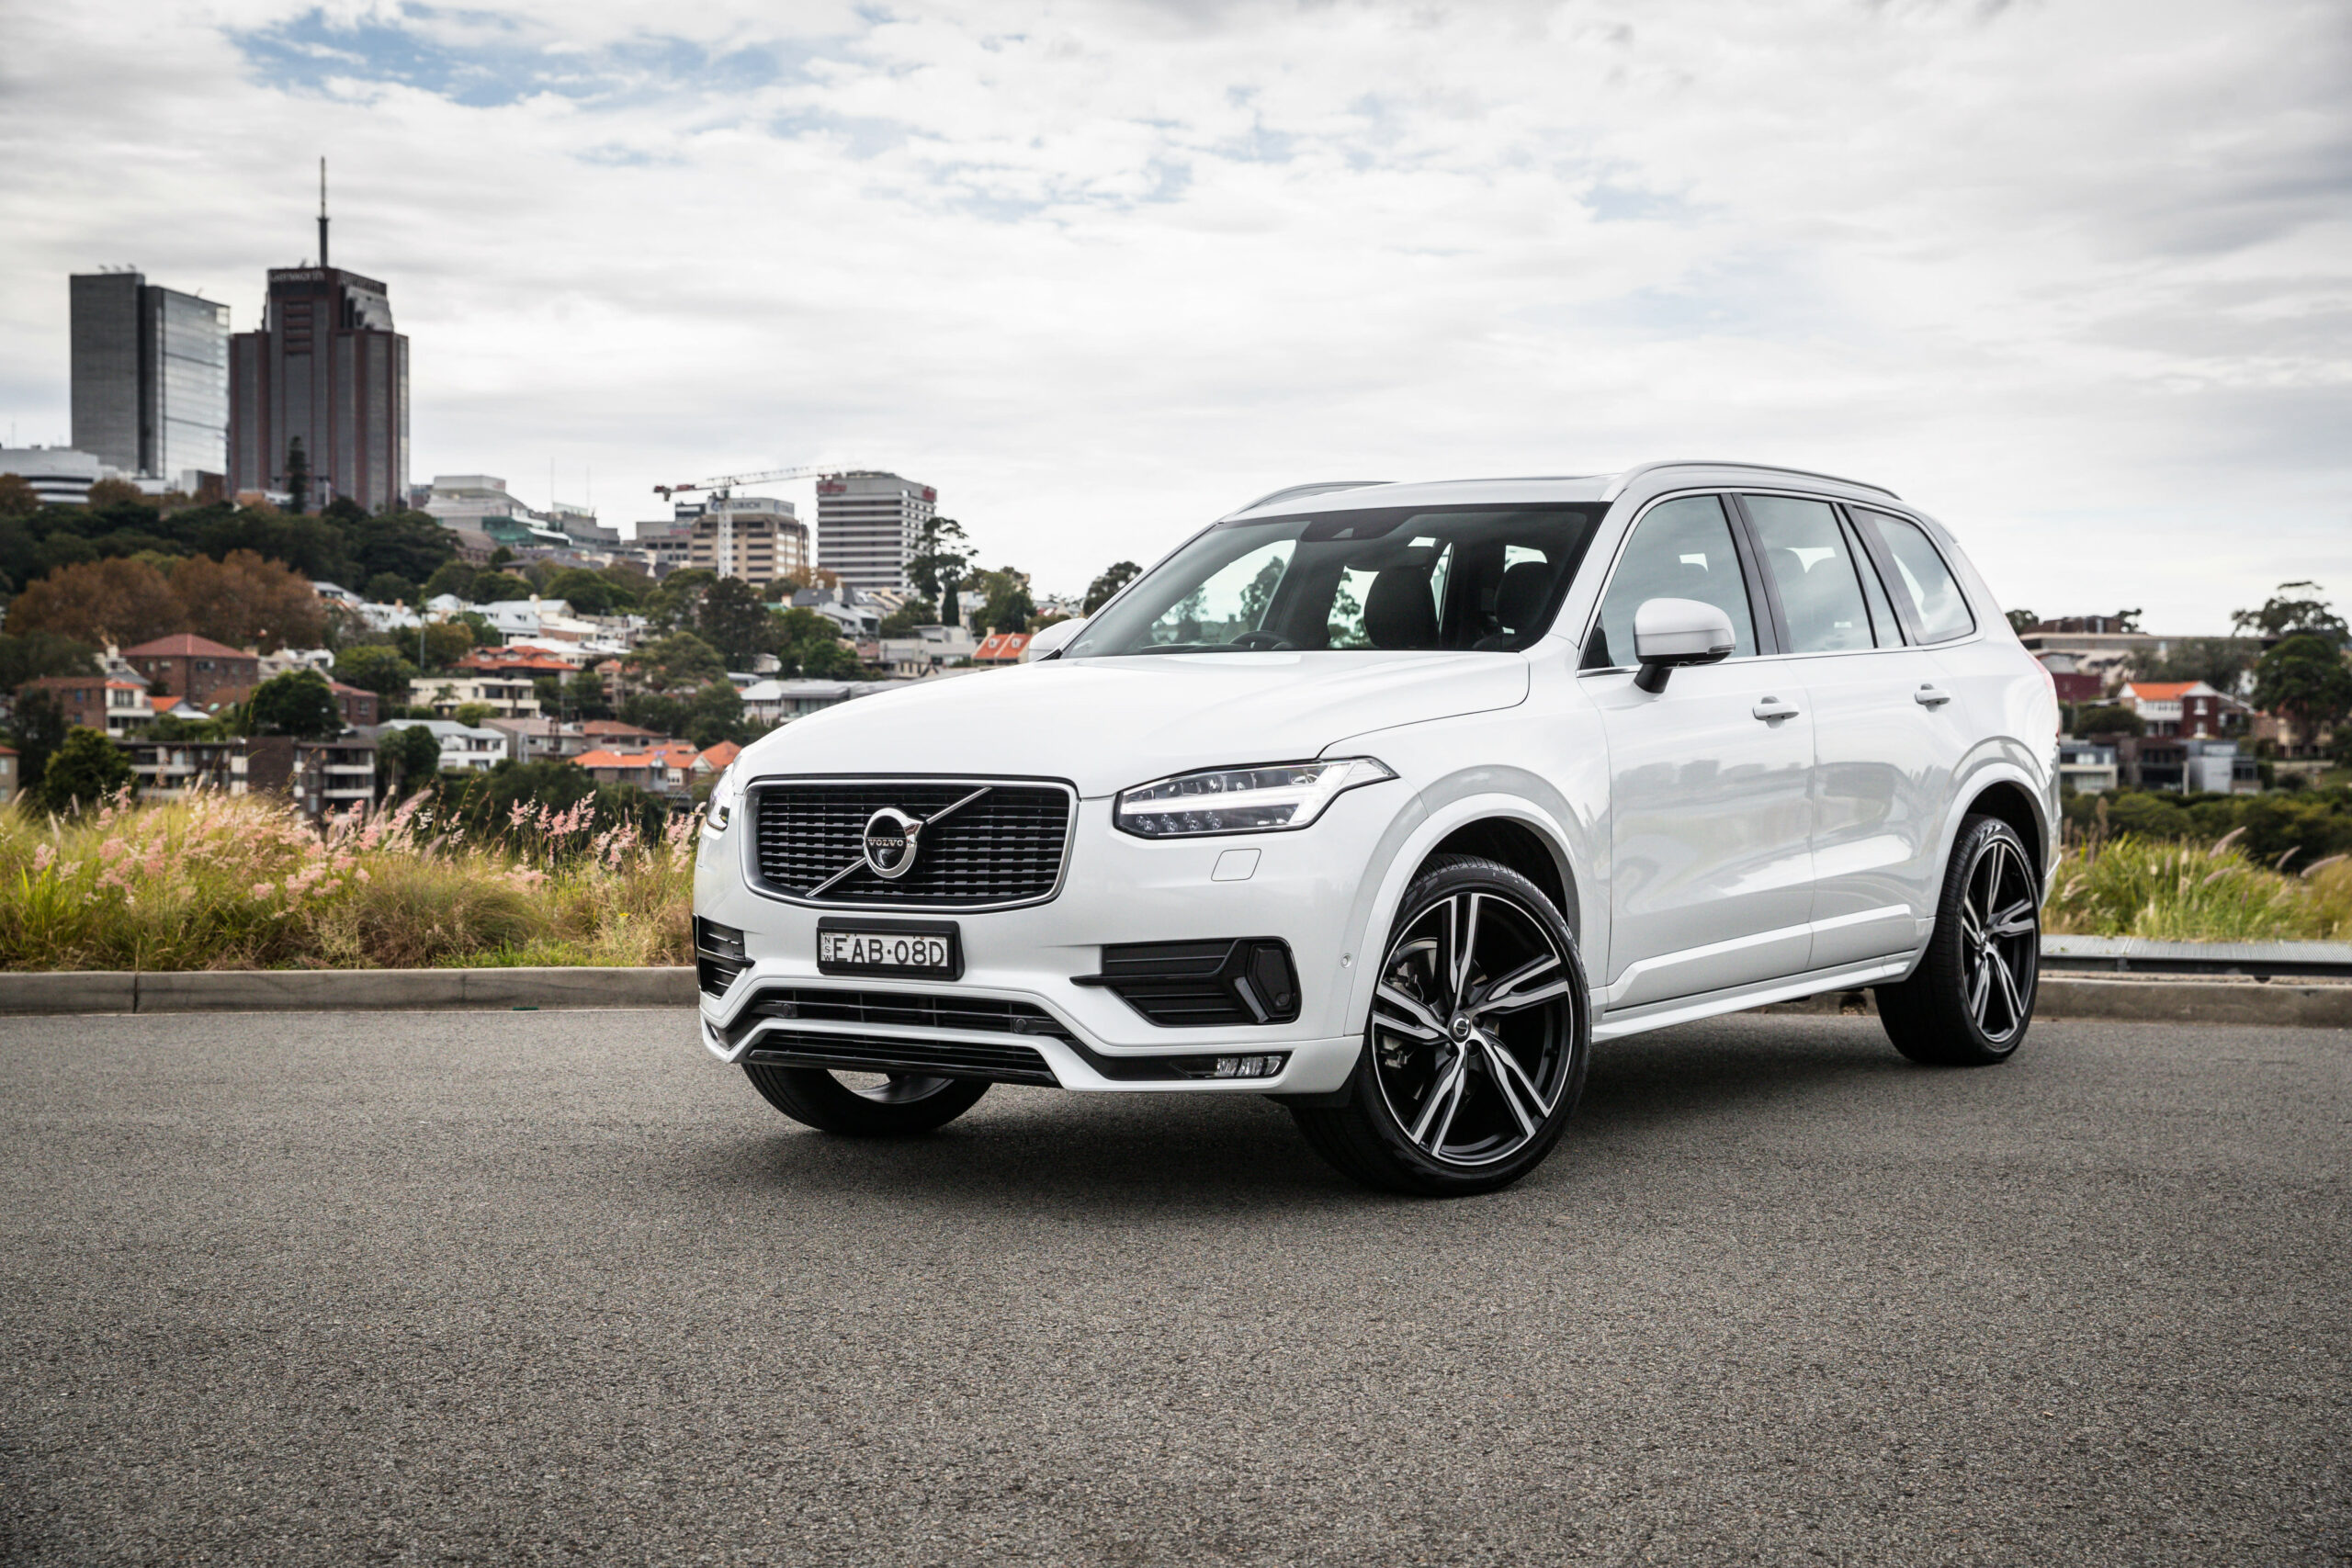 New Concept Volvo Xc90 2022 Review